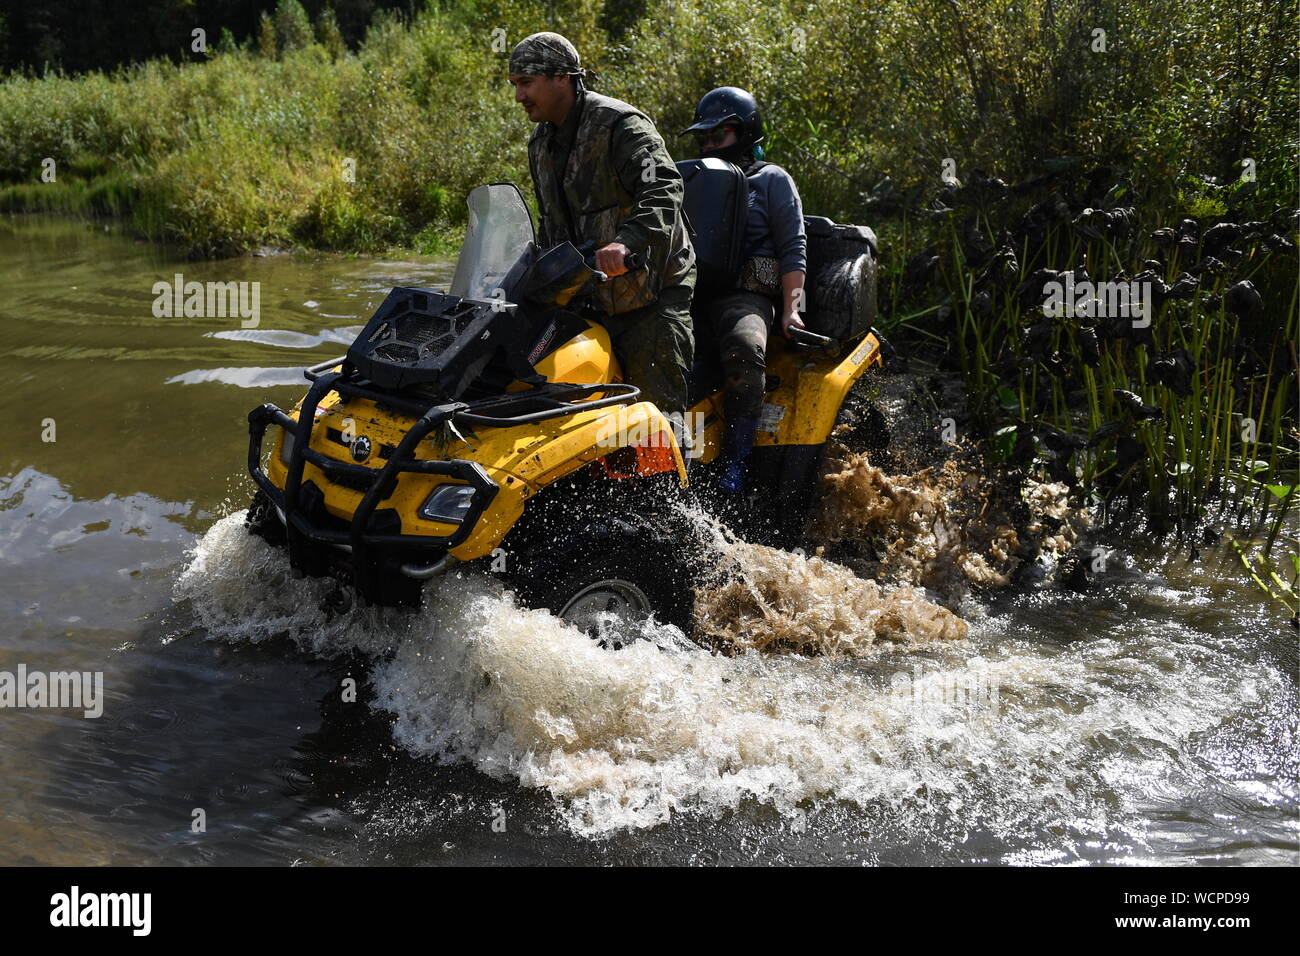 ALTAI TERRITORY, RUSSIA - AUGUST 28, 2019: Forest ranger Alexei Rovkovsky (L) rides an all-terrain vehicle in a protected area of taiga managed by KBU Altaipriroda in Togul District of Russia's Altai Territory, which is to become part of a protected area under the working name of Togul National Park; according to the Russian government's project Ekologia (Ecology), the proposed national park is to be established by 2024 and to include parts of Zarinsk District, Togul District, and Yeltsovka District of the Altai Territory, with a total area of over 160 hectares. Kirill Kukhmar/TASS Stock Photo